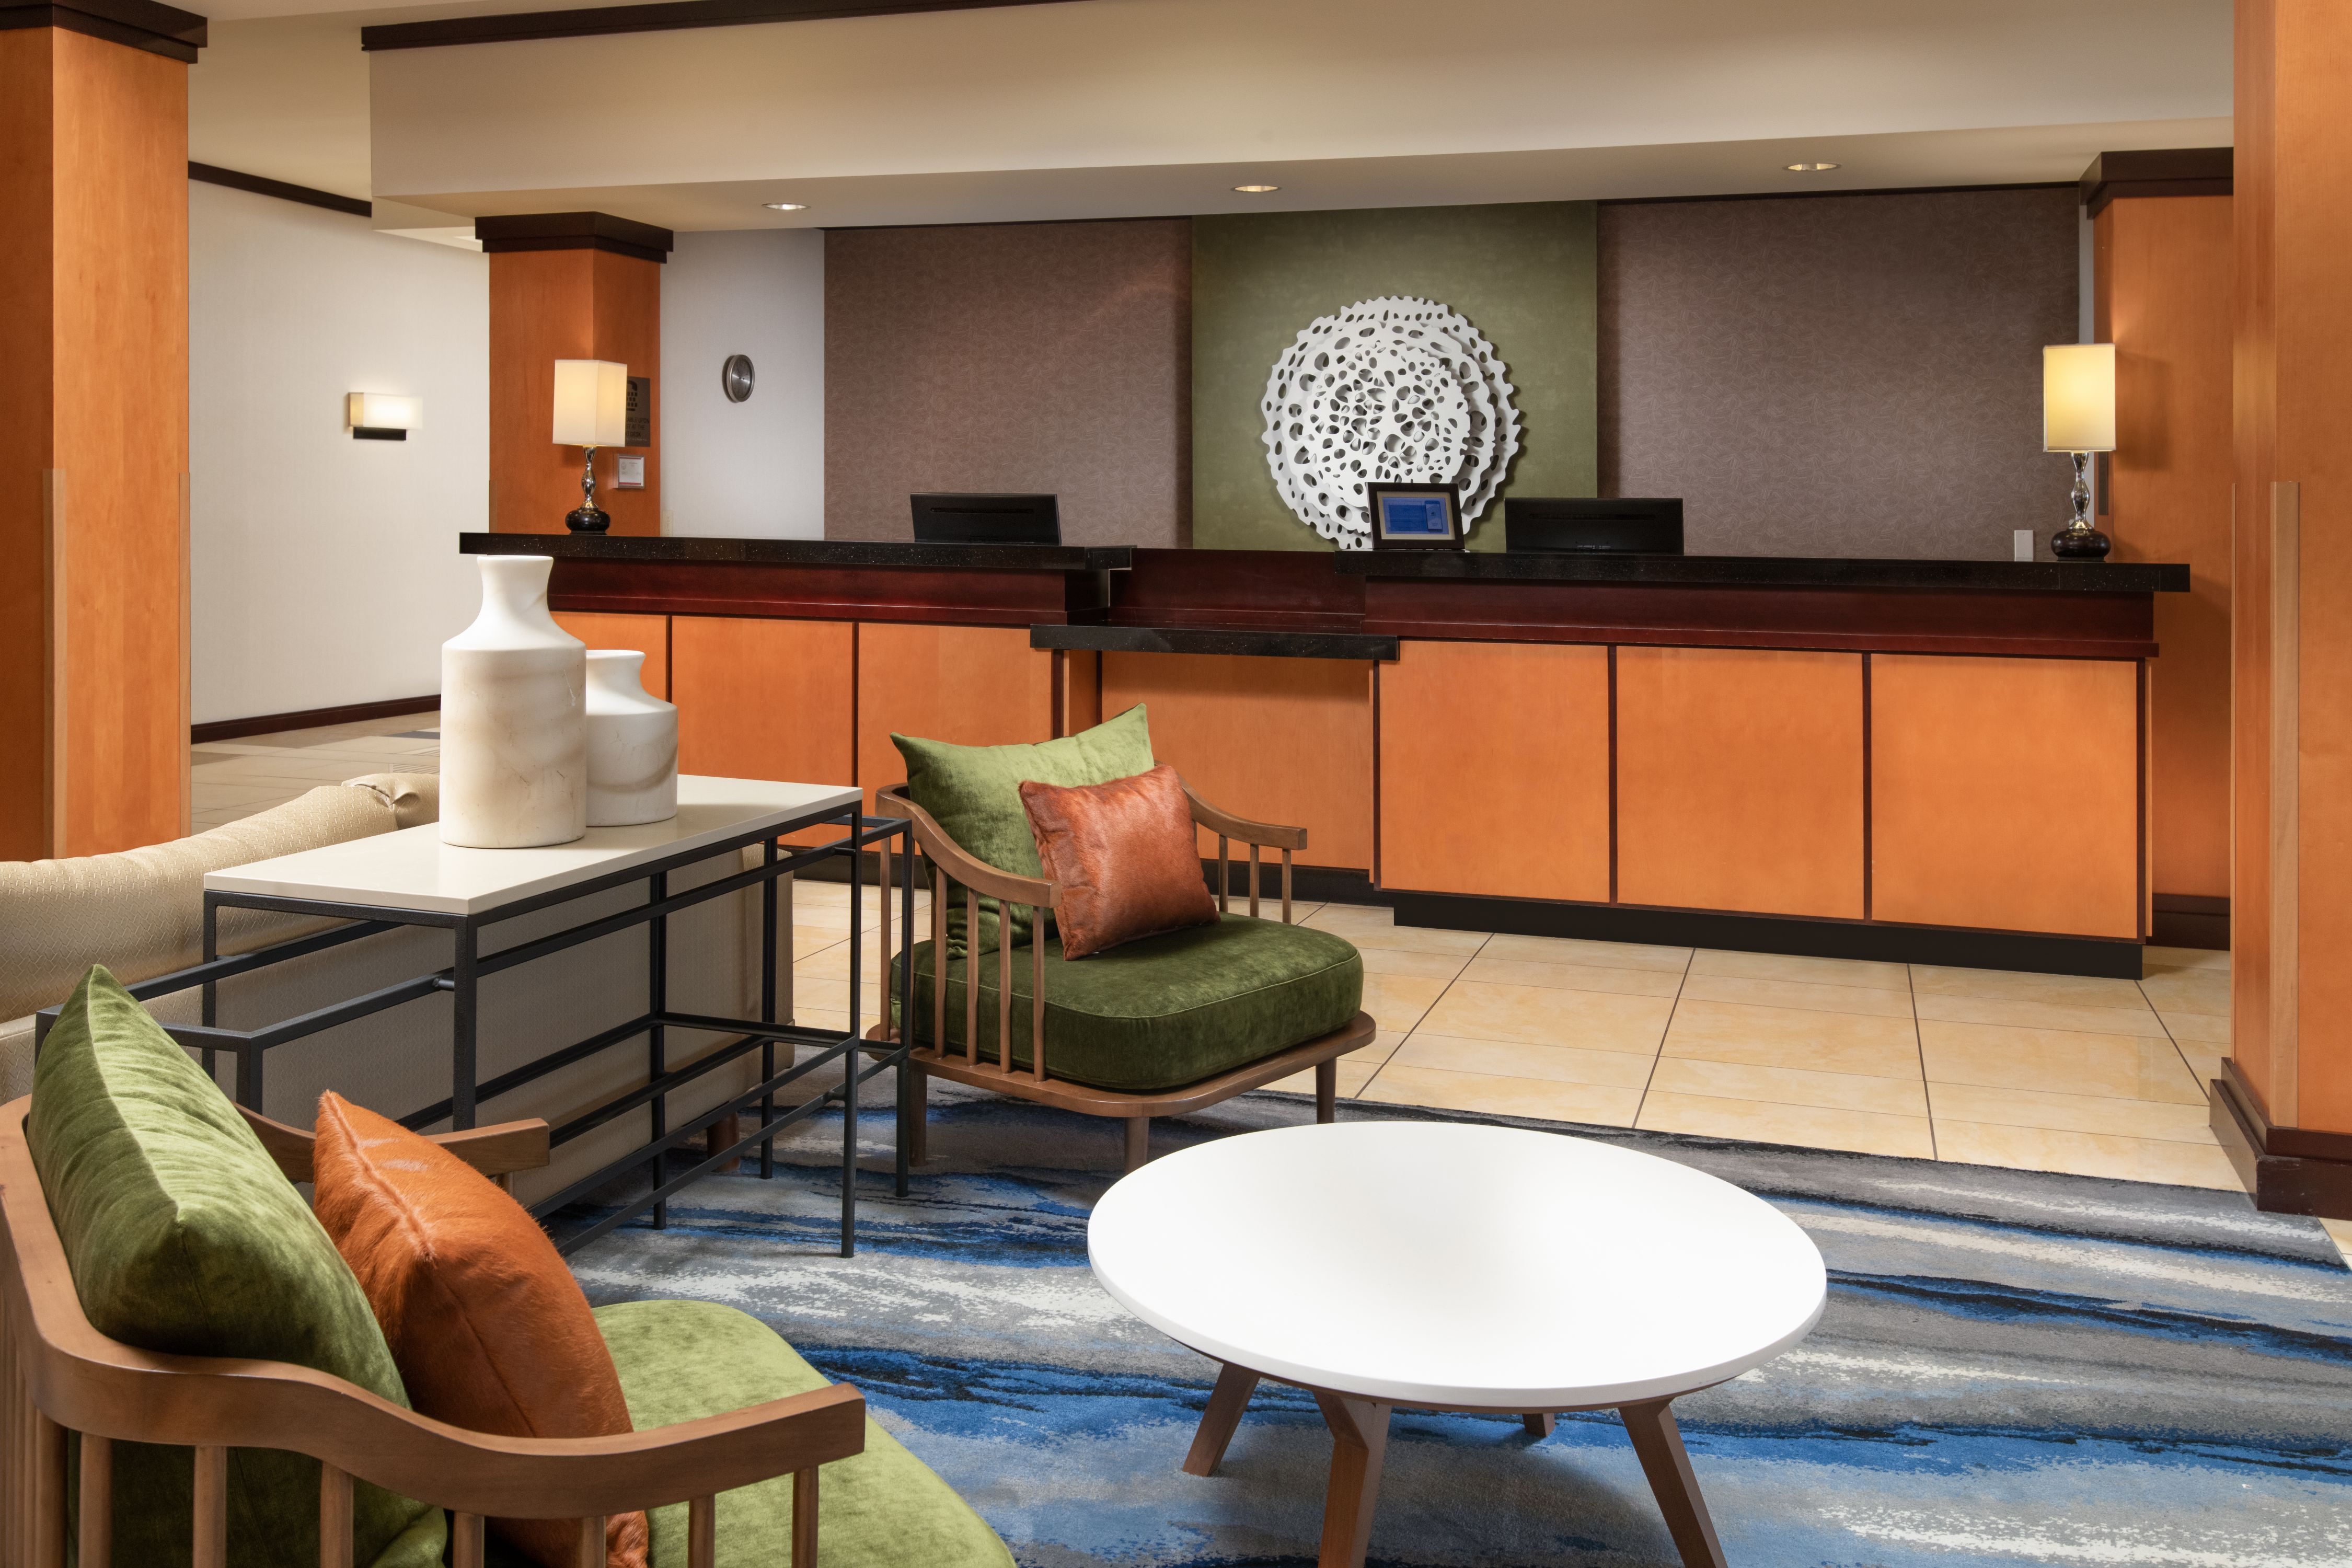 Fairfield Inn & Suites by Marriott Chattanooga I-24/Lookout Mountain image 2